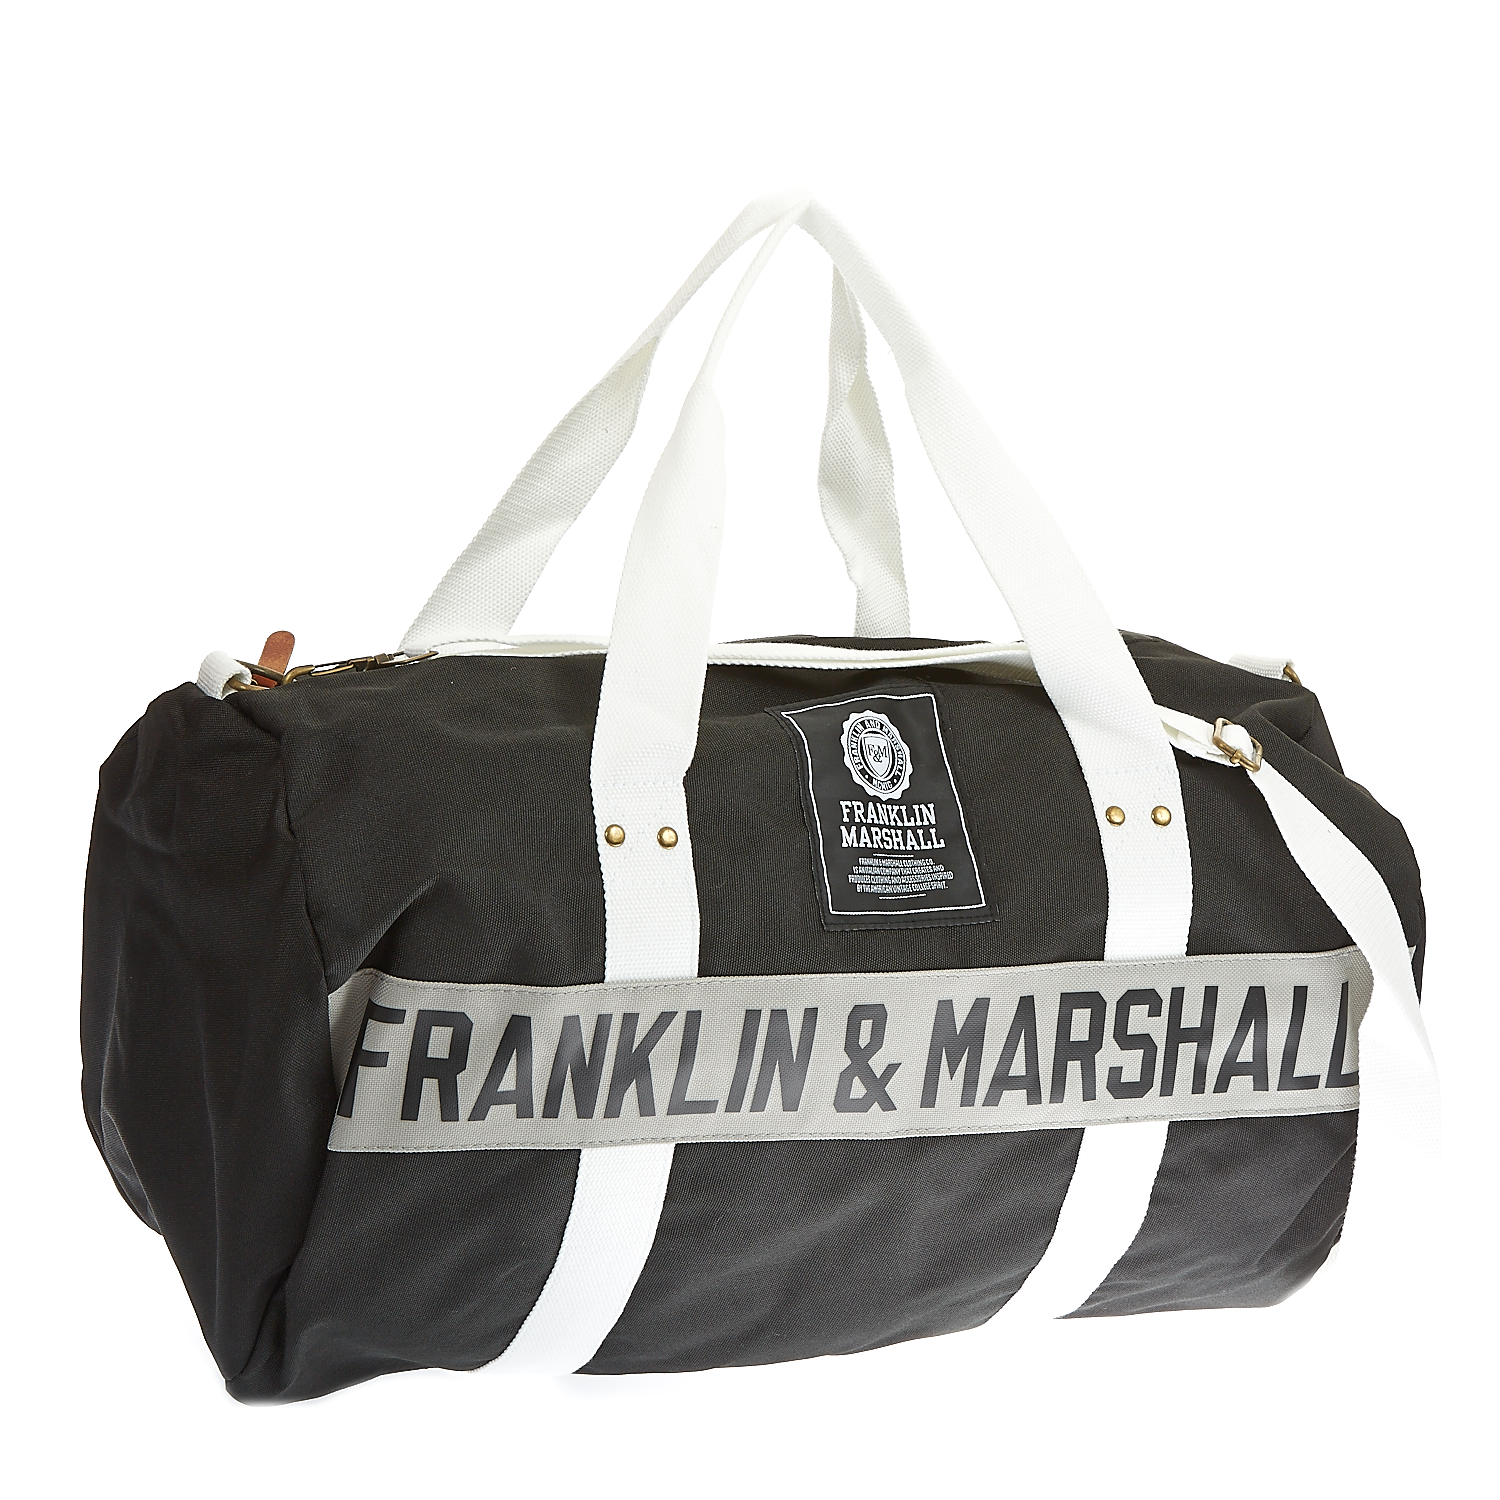 FRANKLIN & MARSHALL – Τσάντα Franklin & Marshall μαύρη 1485781.0-0071